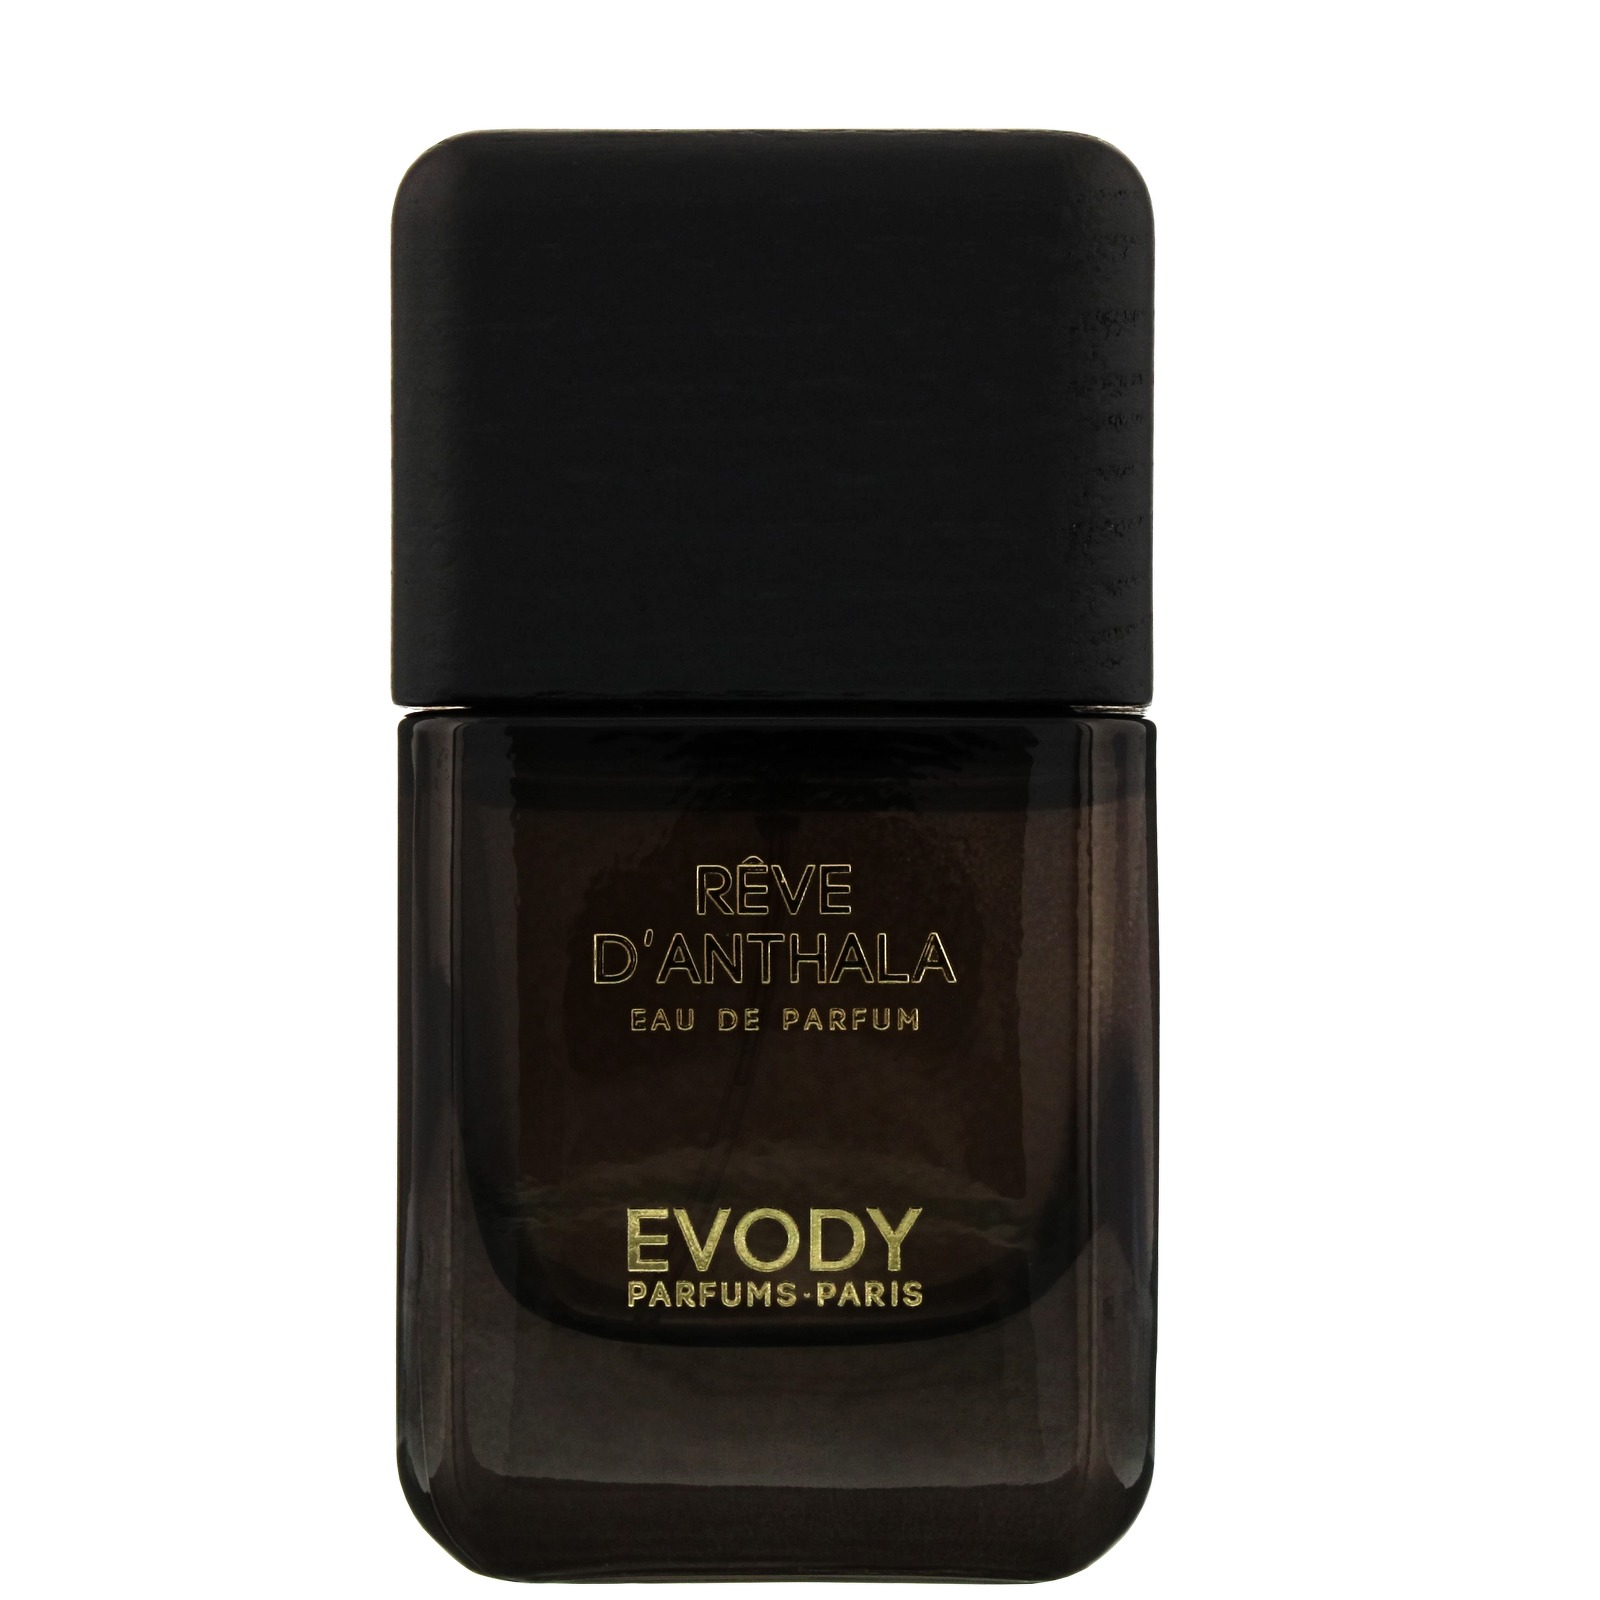 EVODY PARFUMS PARIS Collection Première  Rêve D'Anthala Eau de Parfum Spray 50ml